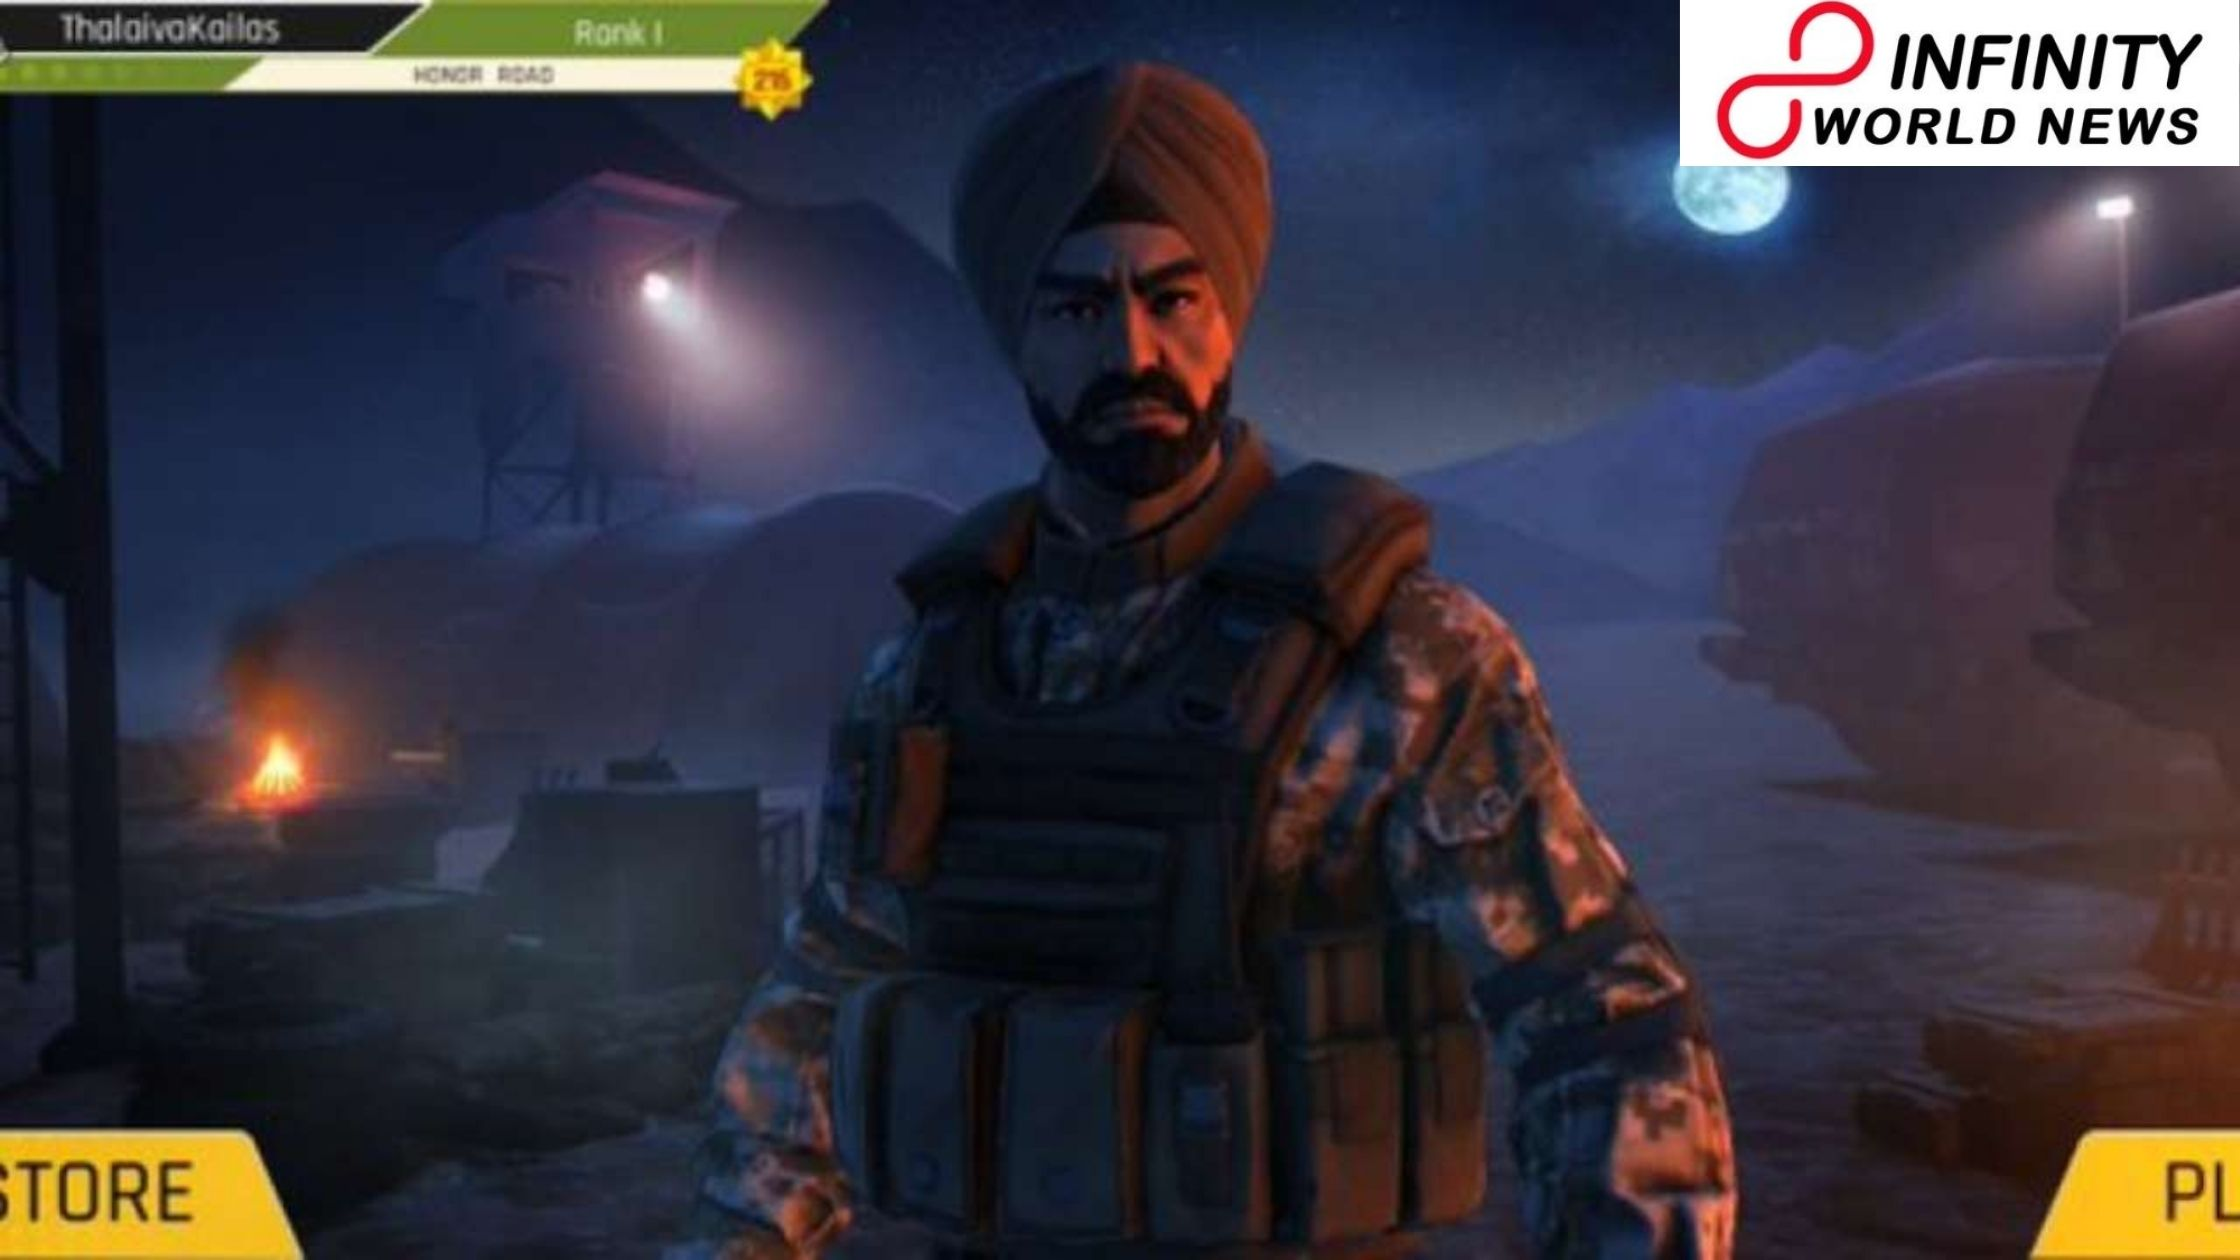 PUBG VS FAUG – FAU - G Google Play Store Rating Falls After Launch; Here's The Reason Why